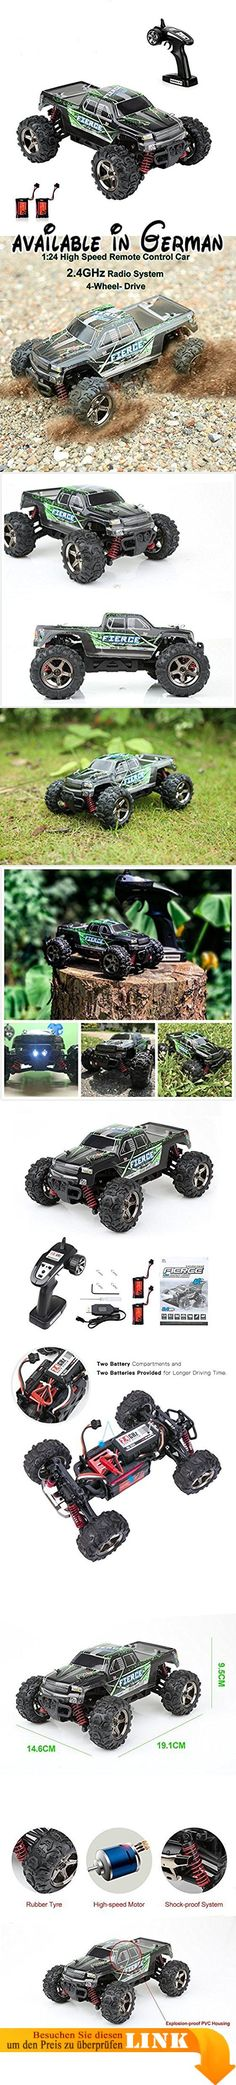 crazist pro brushless elektro monstertruck 1 10 2 4ghz 4wd rtr ferngesteuertes auto pinterest. Black Bedroom Furniture Sets. Home Design Ideas